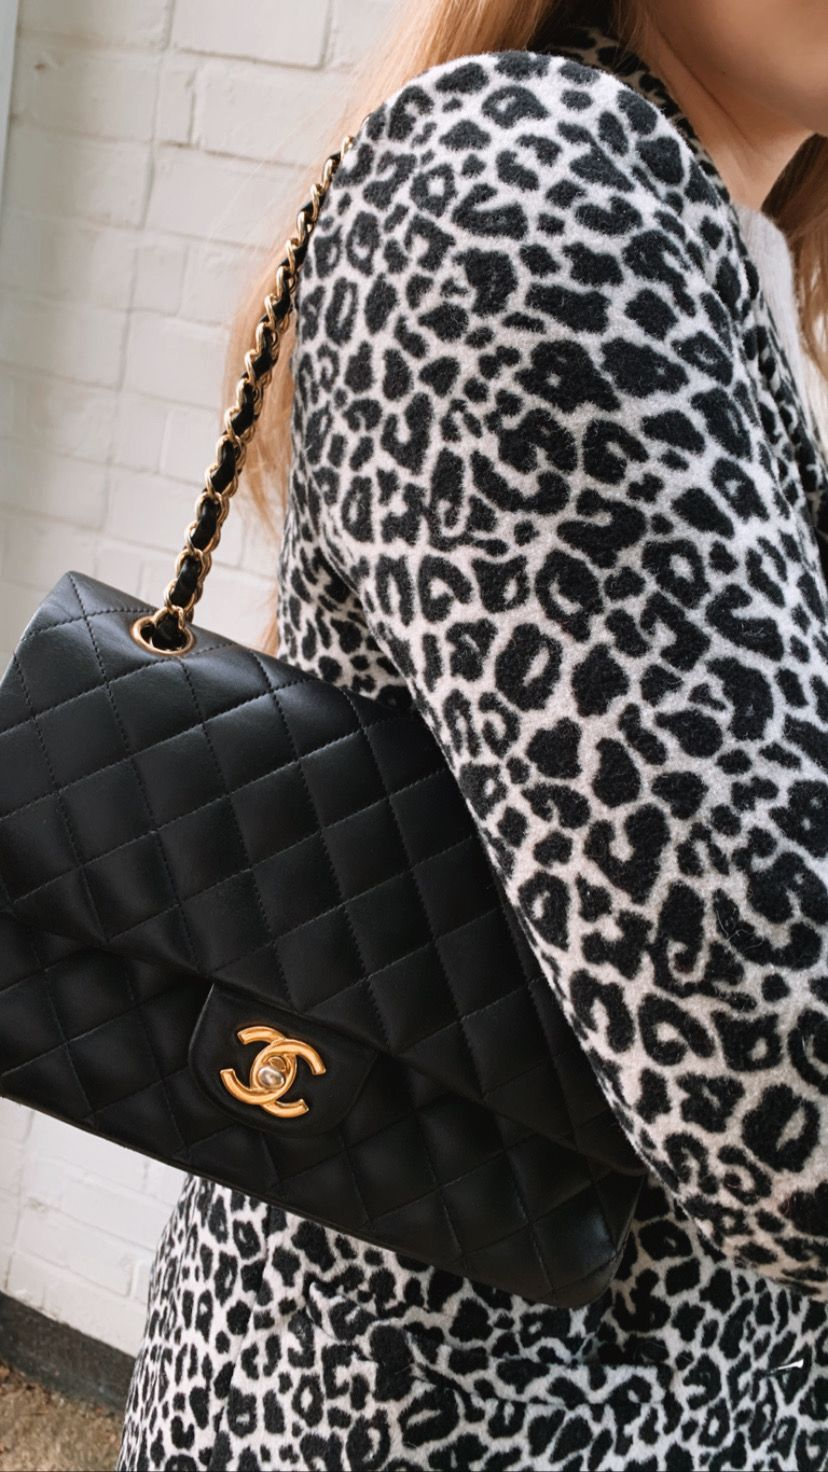 Preloved Chanel Flap Bag Available Online Now From Timpanys In 2020 Chanel Flap Bag Bags Flap Bag